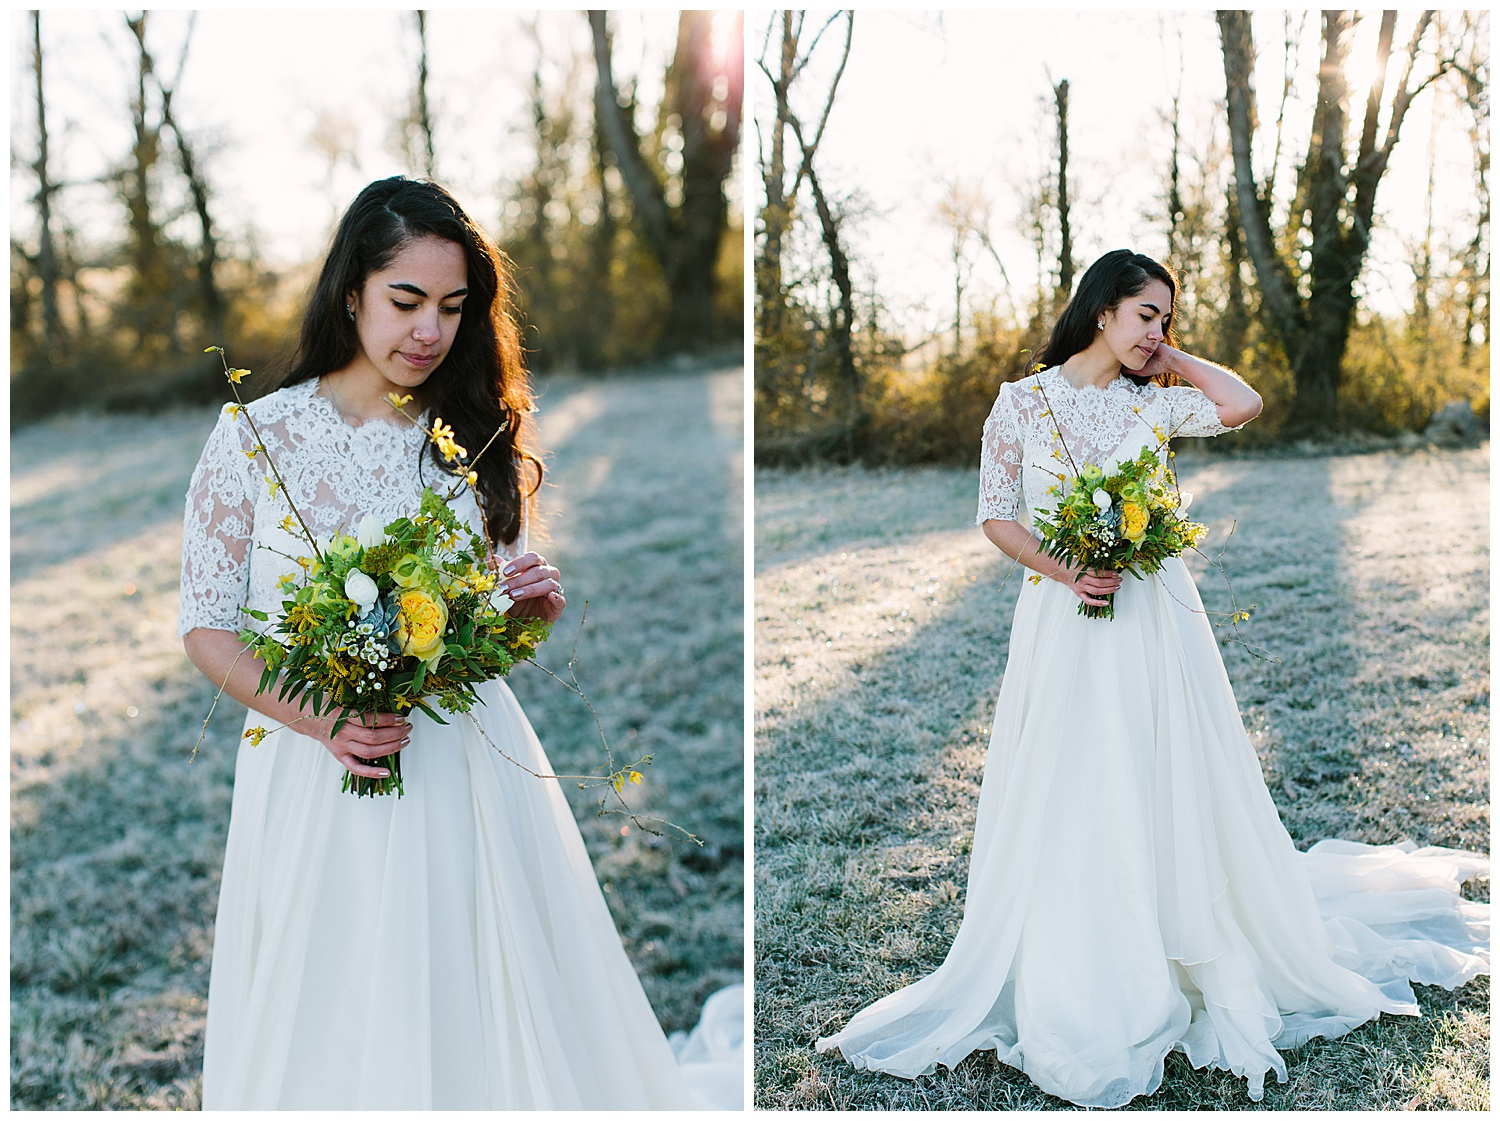 trent.and.kendra.photography.foxhollow.farm.elopement-64.jpg